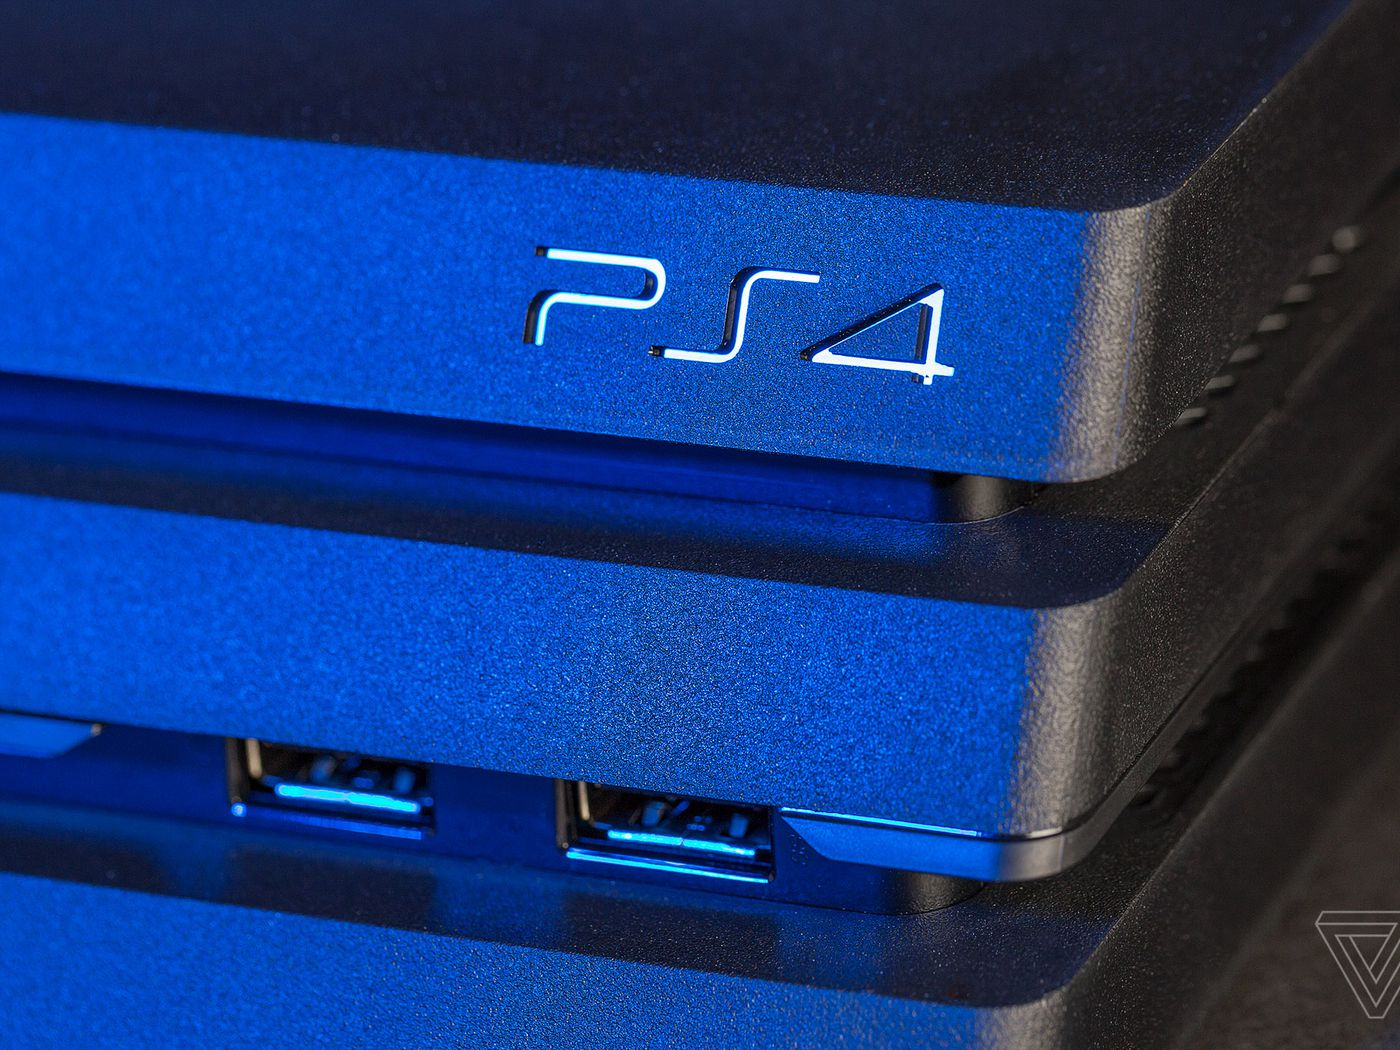 Bought a PS4 Pro? To get your money's worth, check these